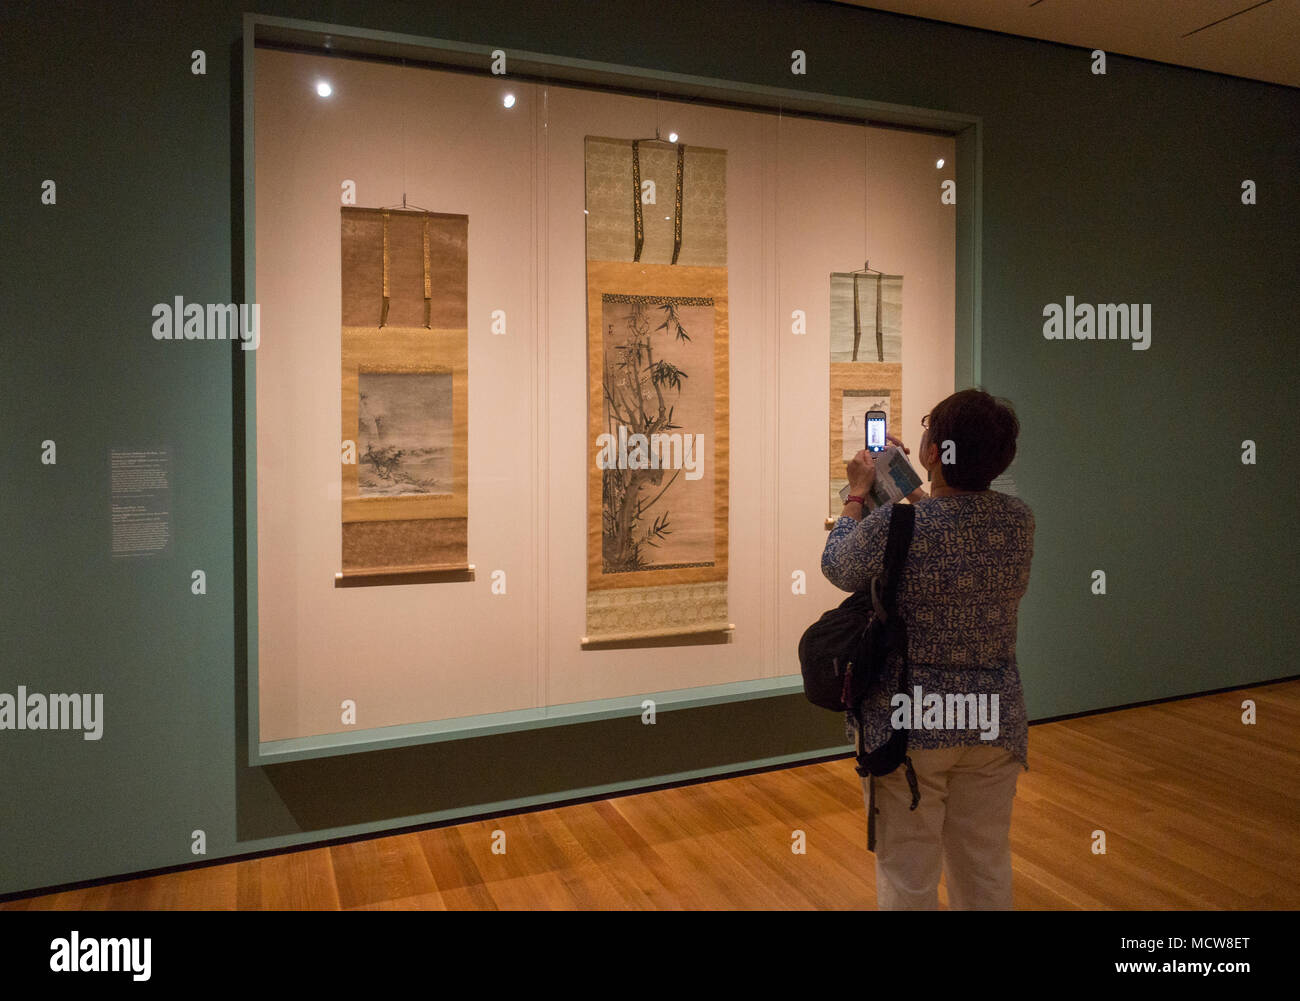 Cleveland museum of art Ohio Stock Photo